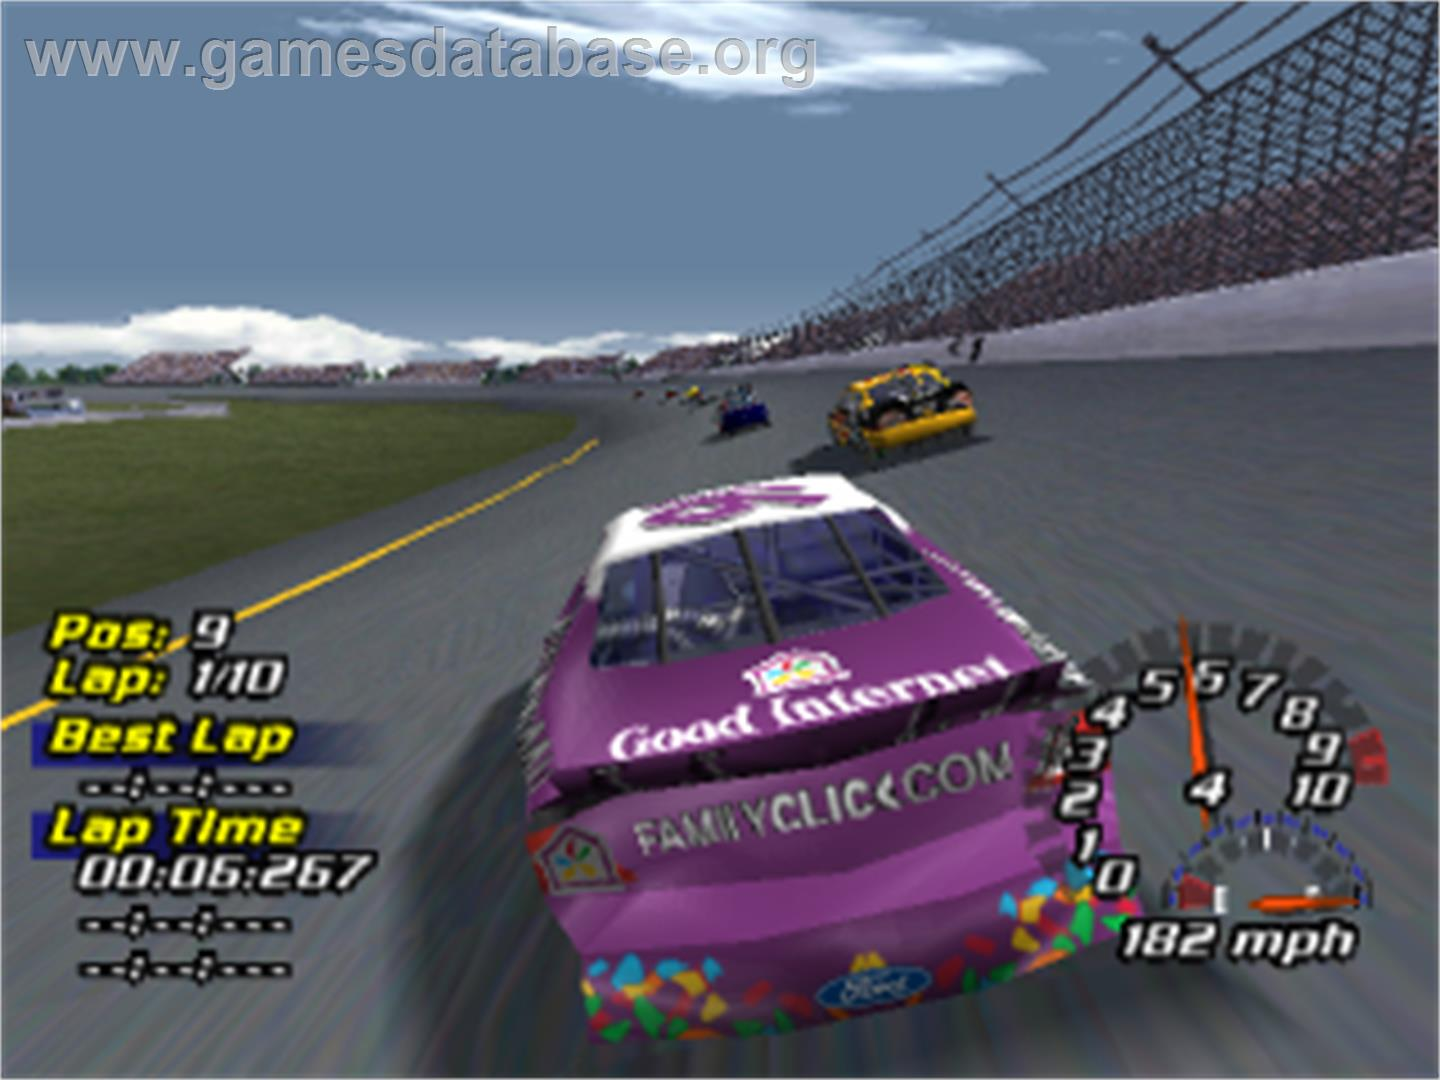 Nascar 2001 full game free pc, download, play. Nascar 2001 android.